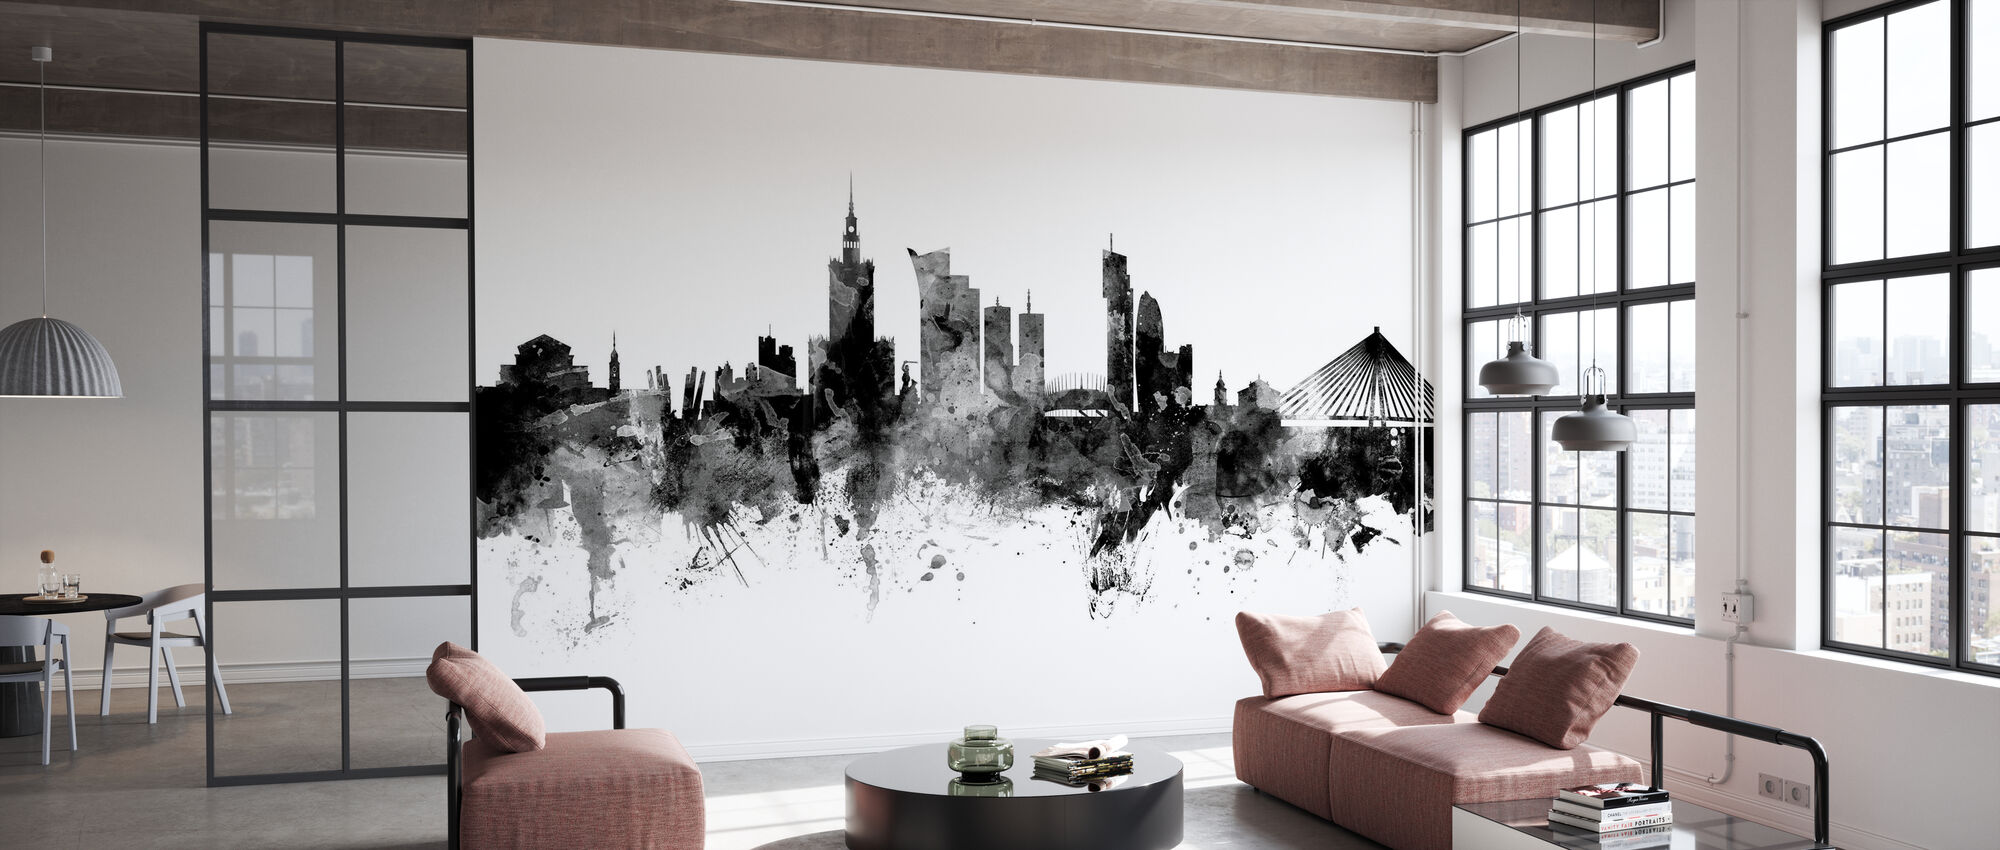 Warsaw Skyline, black and white - Wallpaper - Office